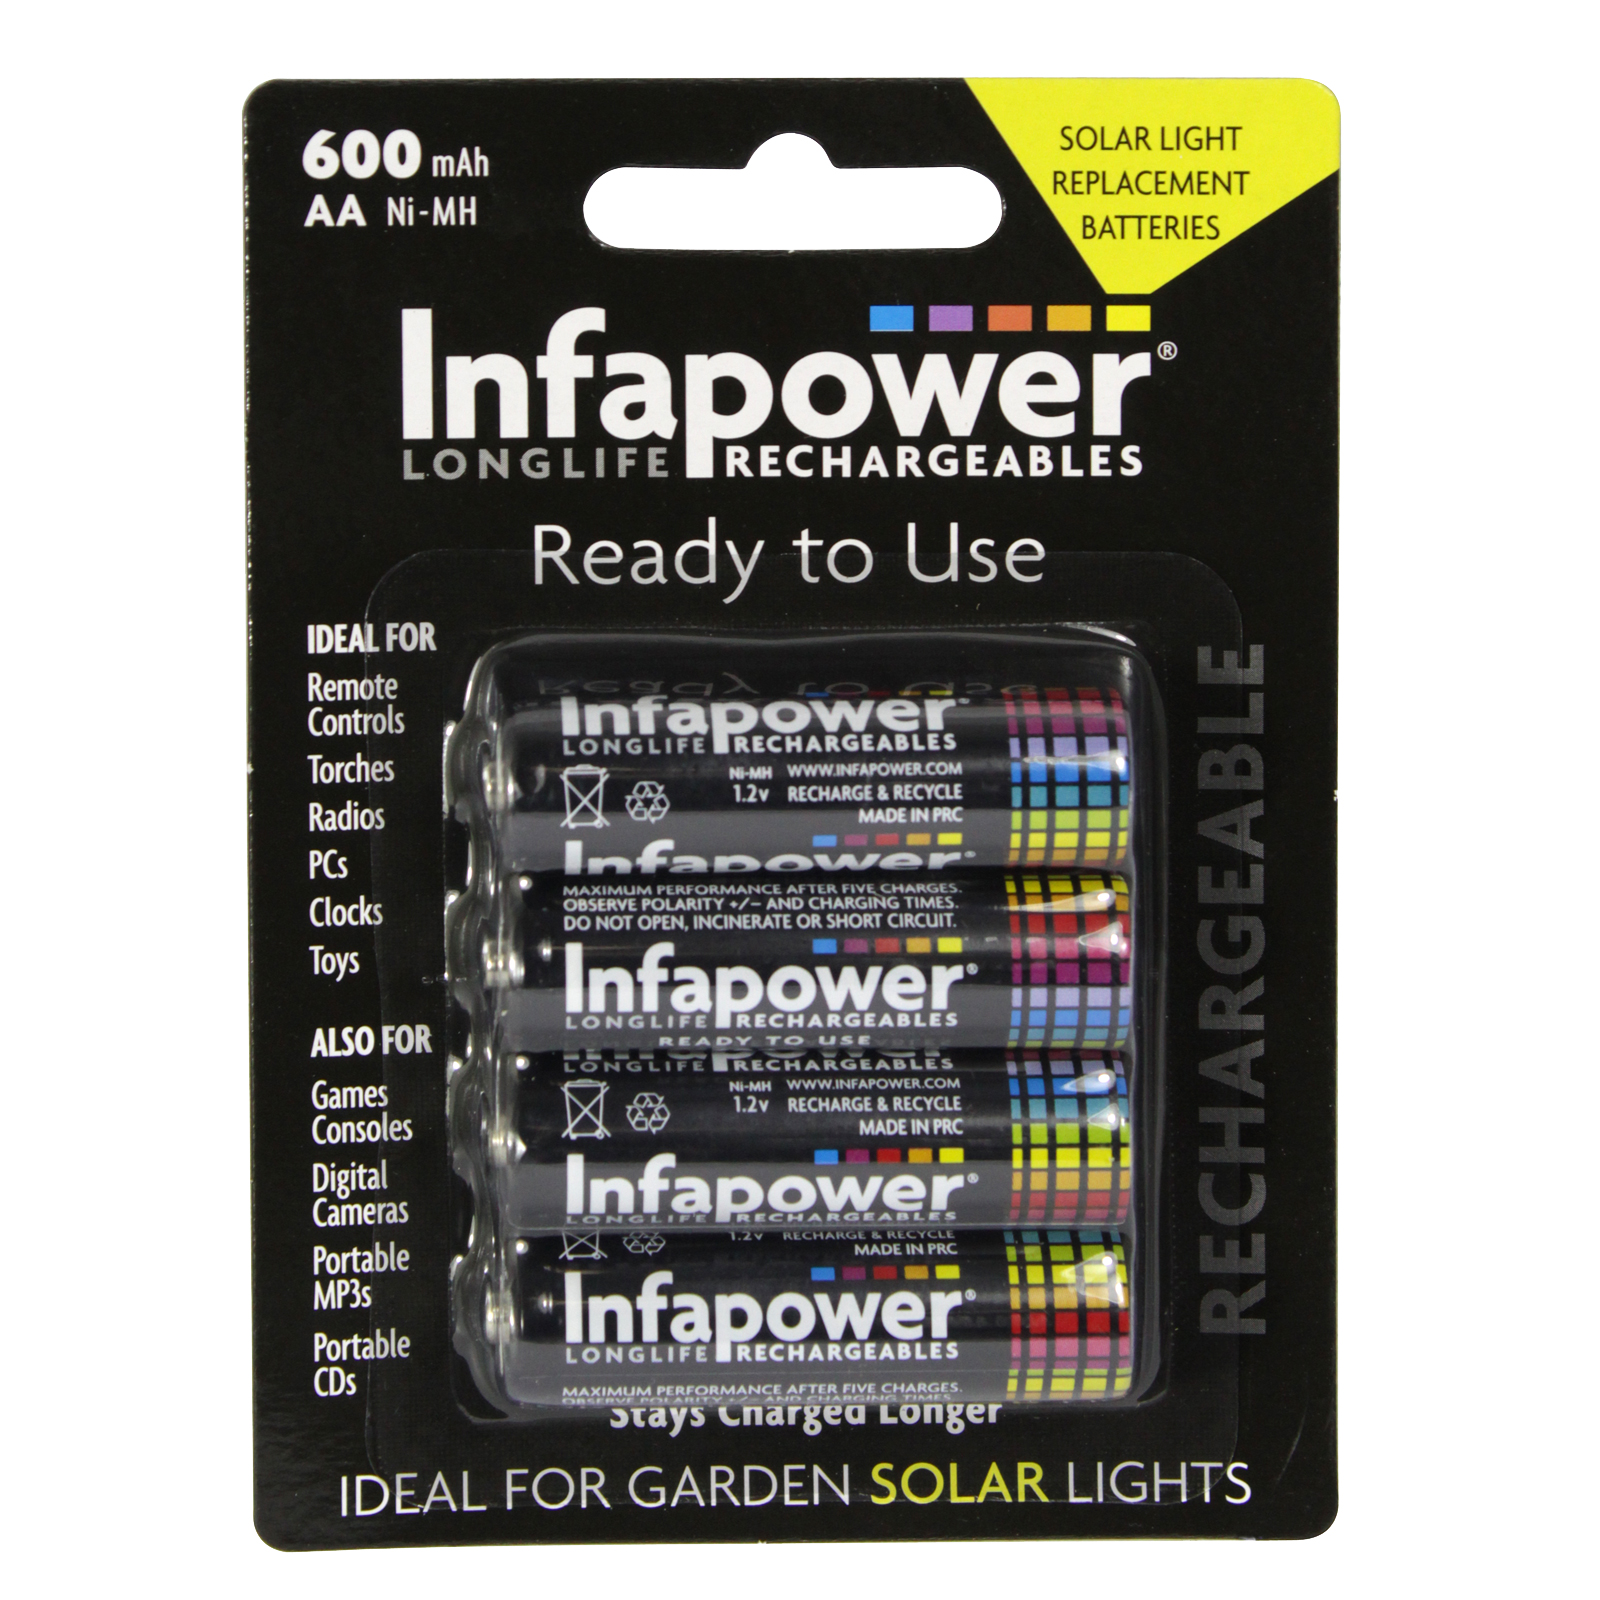 INFAPOWER RECHARGEABLE BATTERIES READY TO USE AA 4PK 600MAH